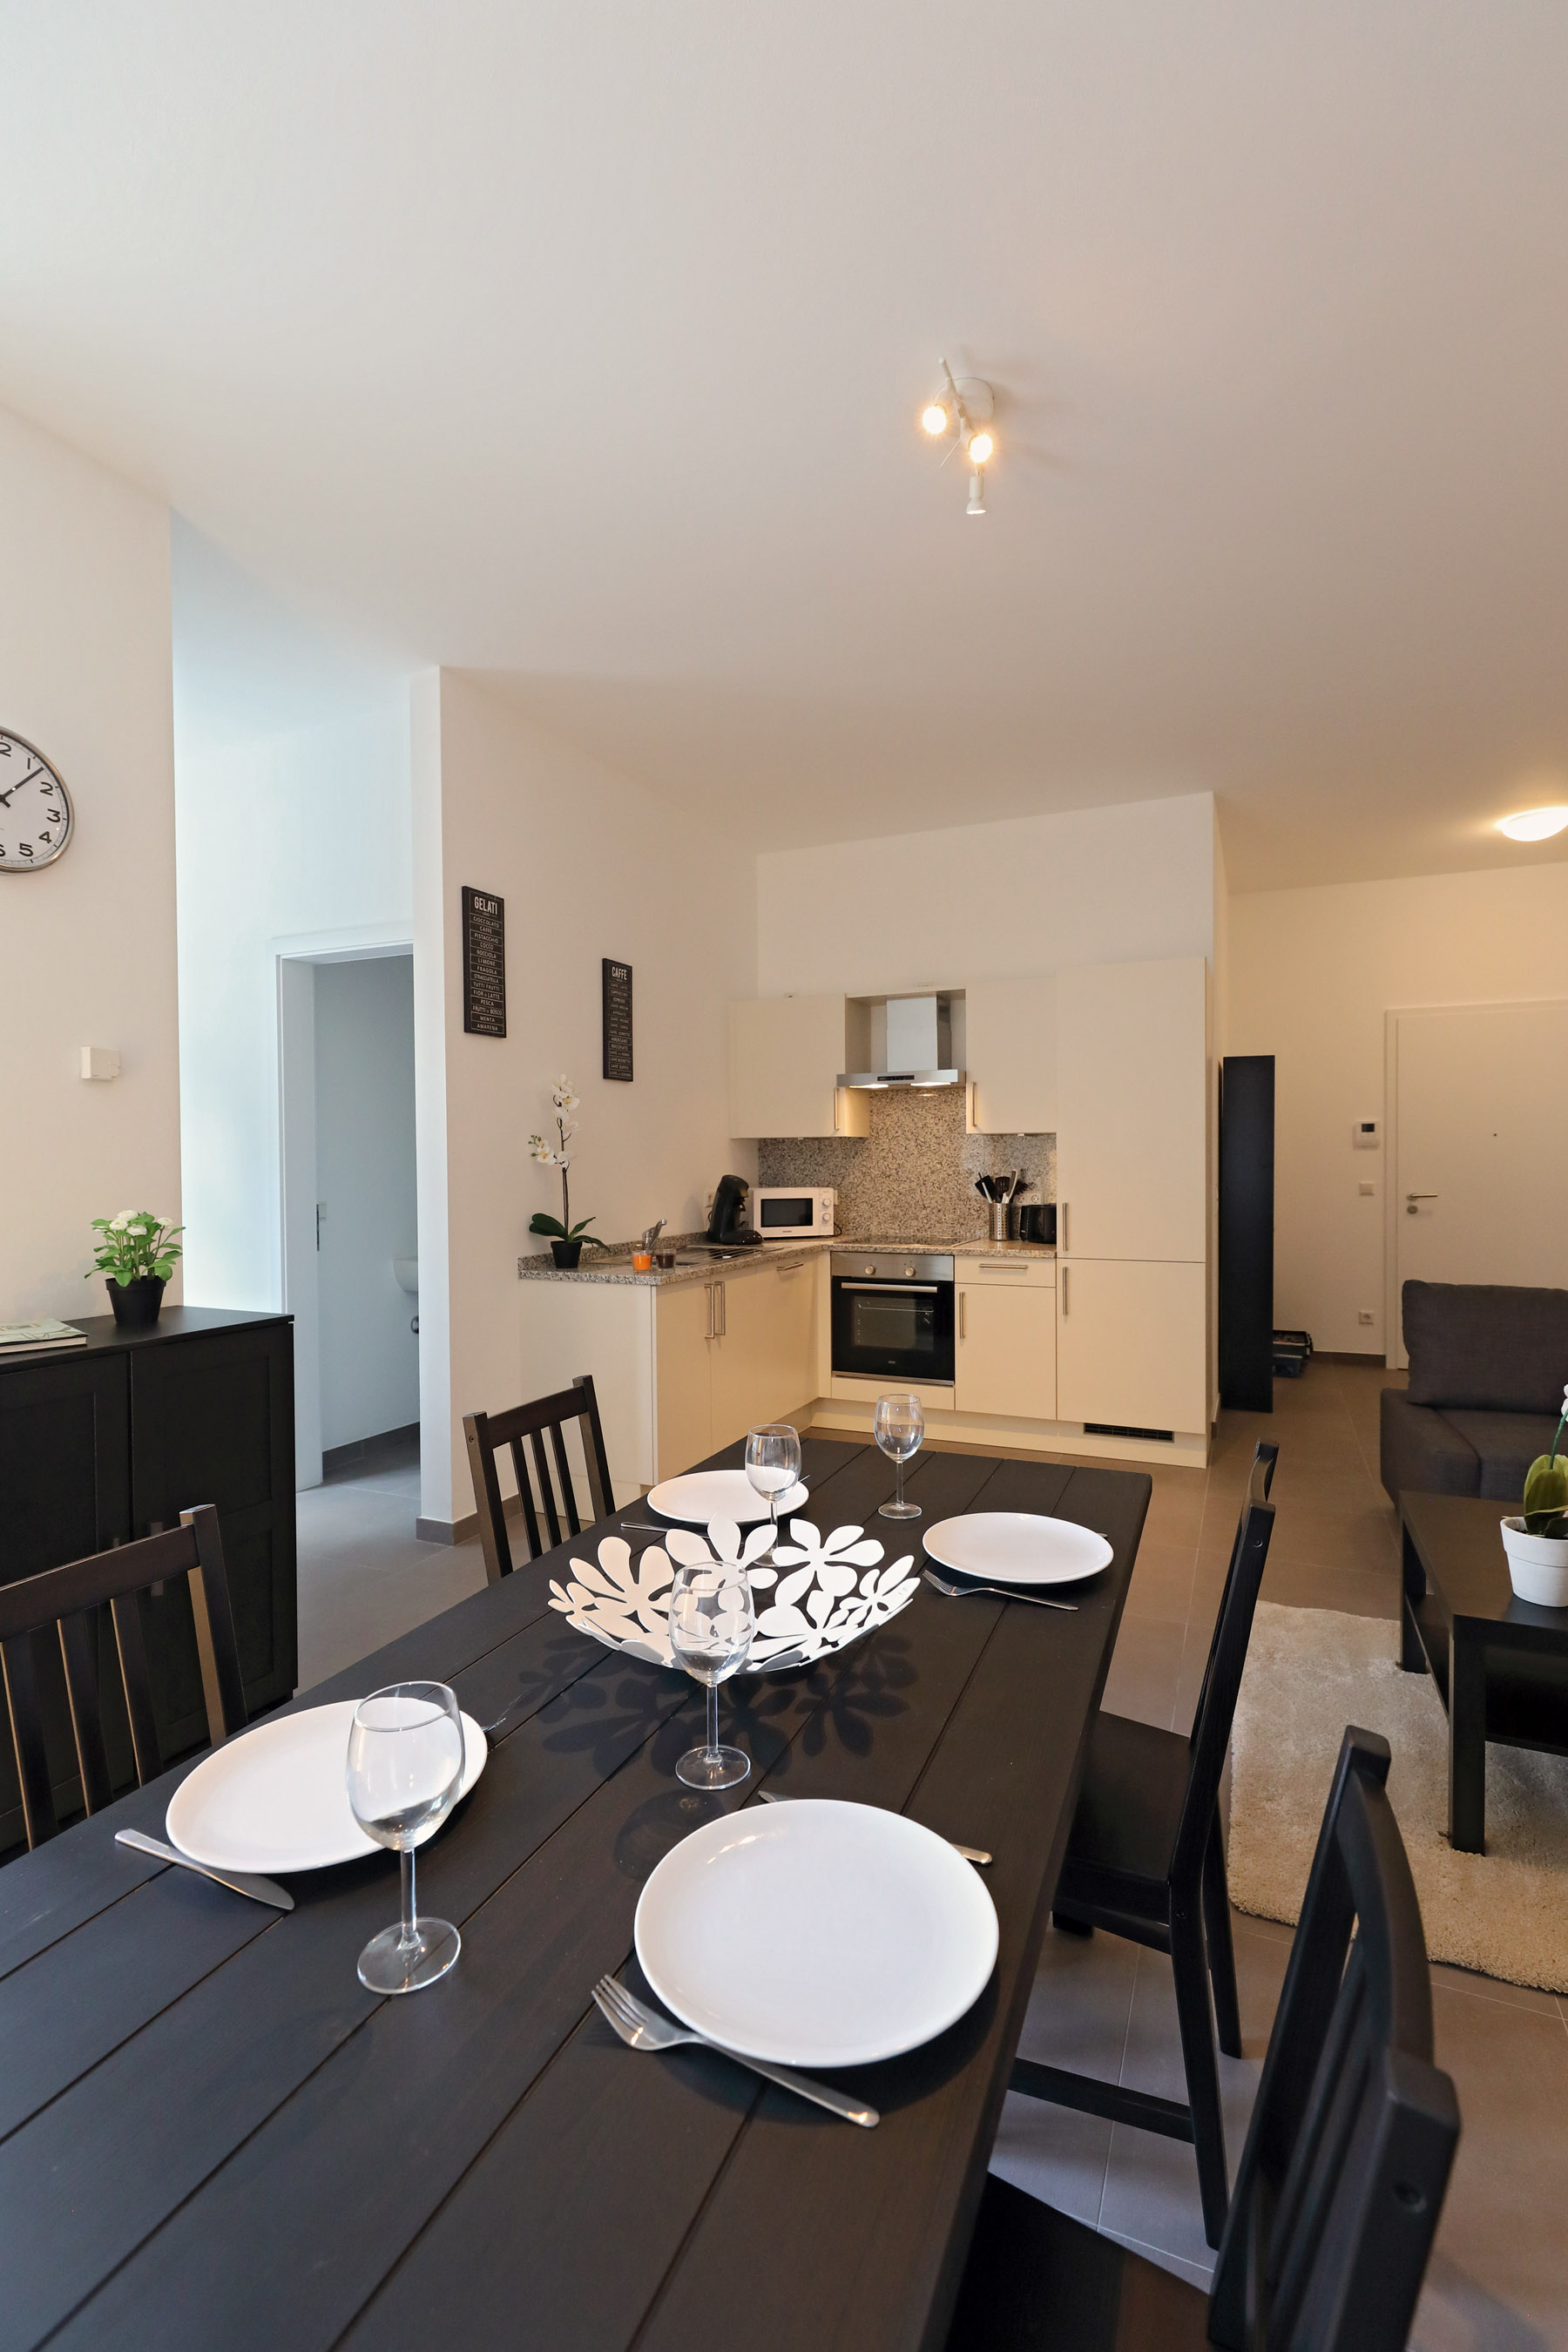 Great 1-bedroom apartment in Luxembourg-Pulvermuehle